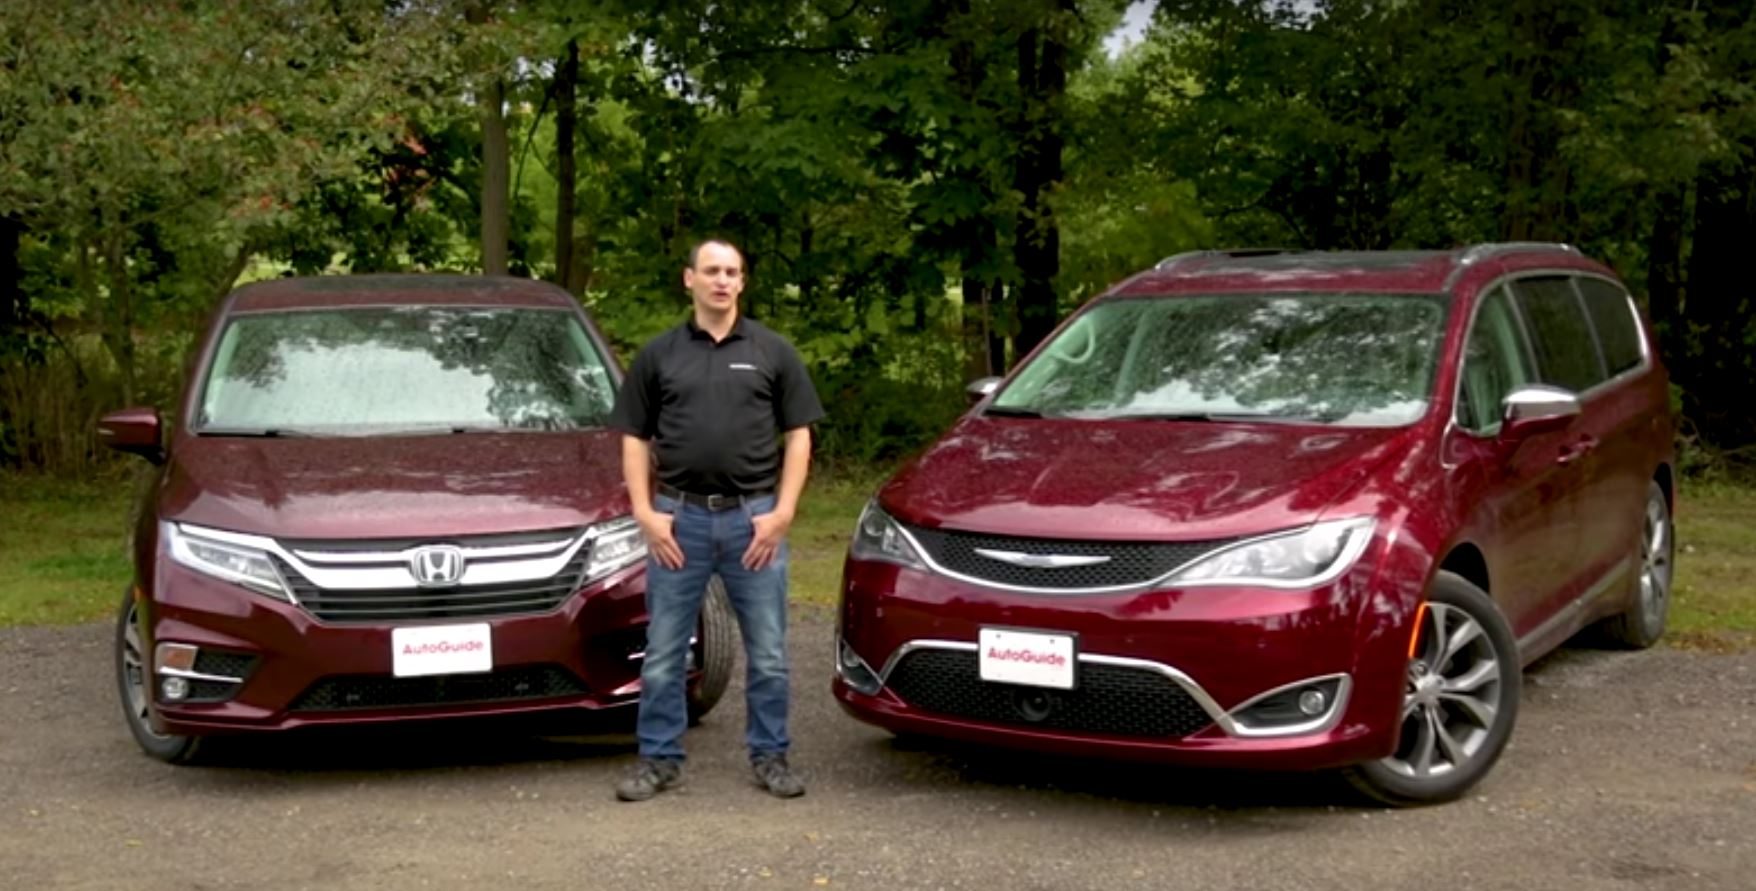 2018 honda odyssey vs 2017 chrysler pacifica a clash of for Chrysler pacifica vs honda odyssey